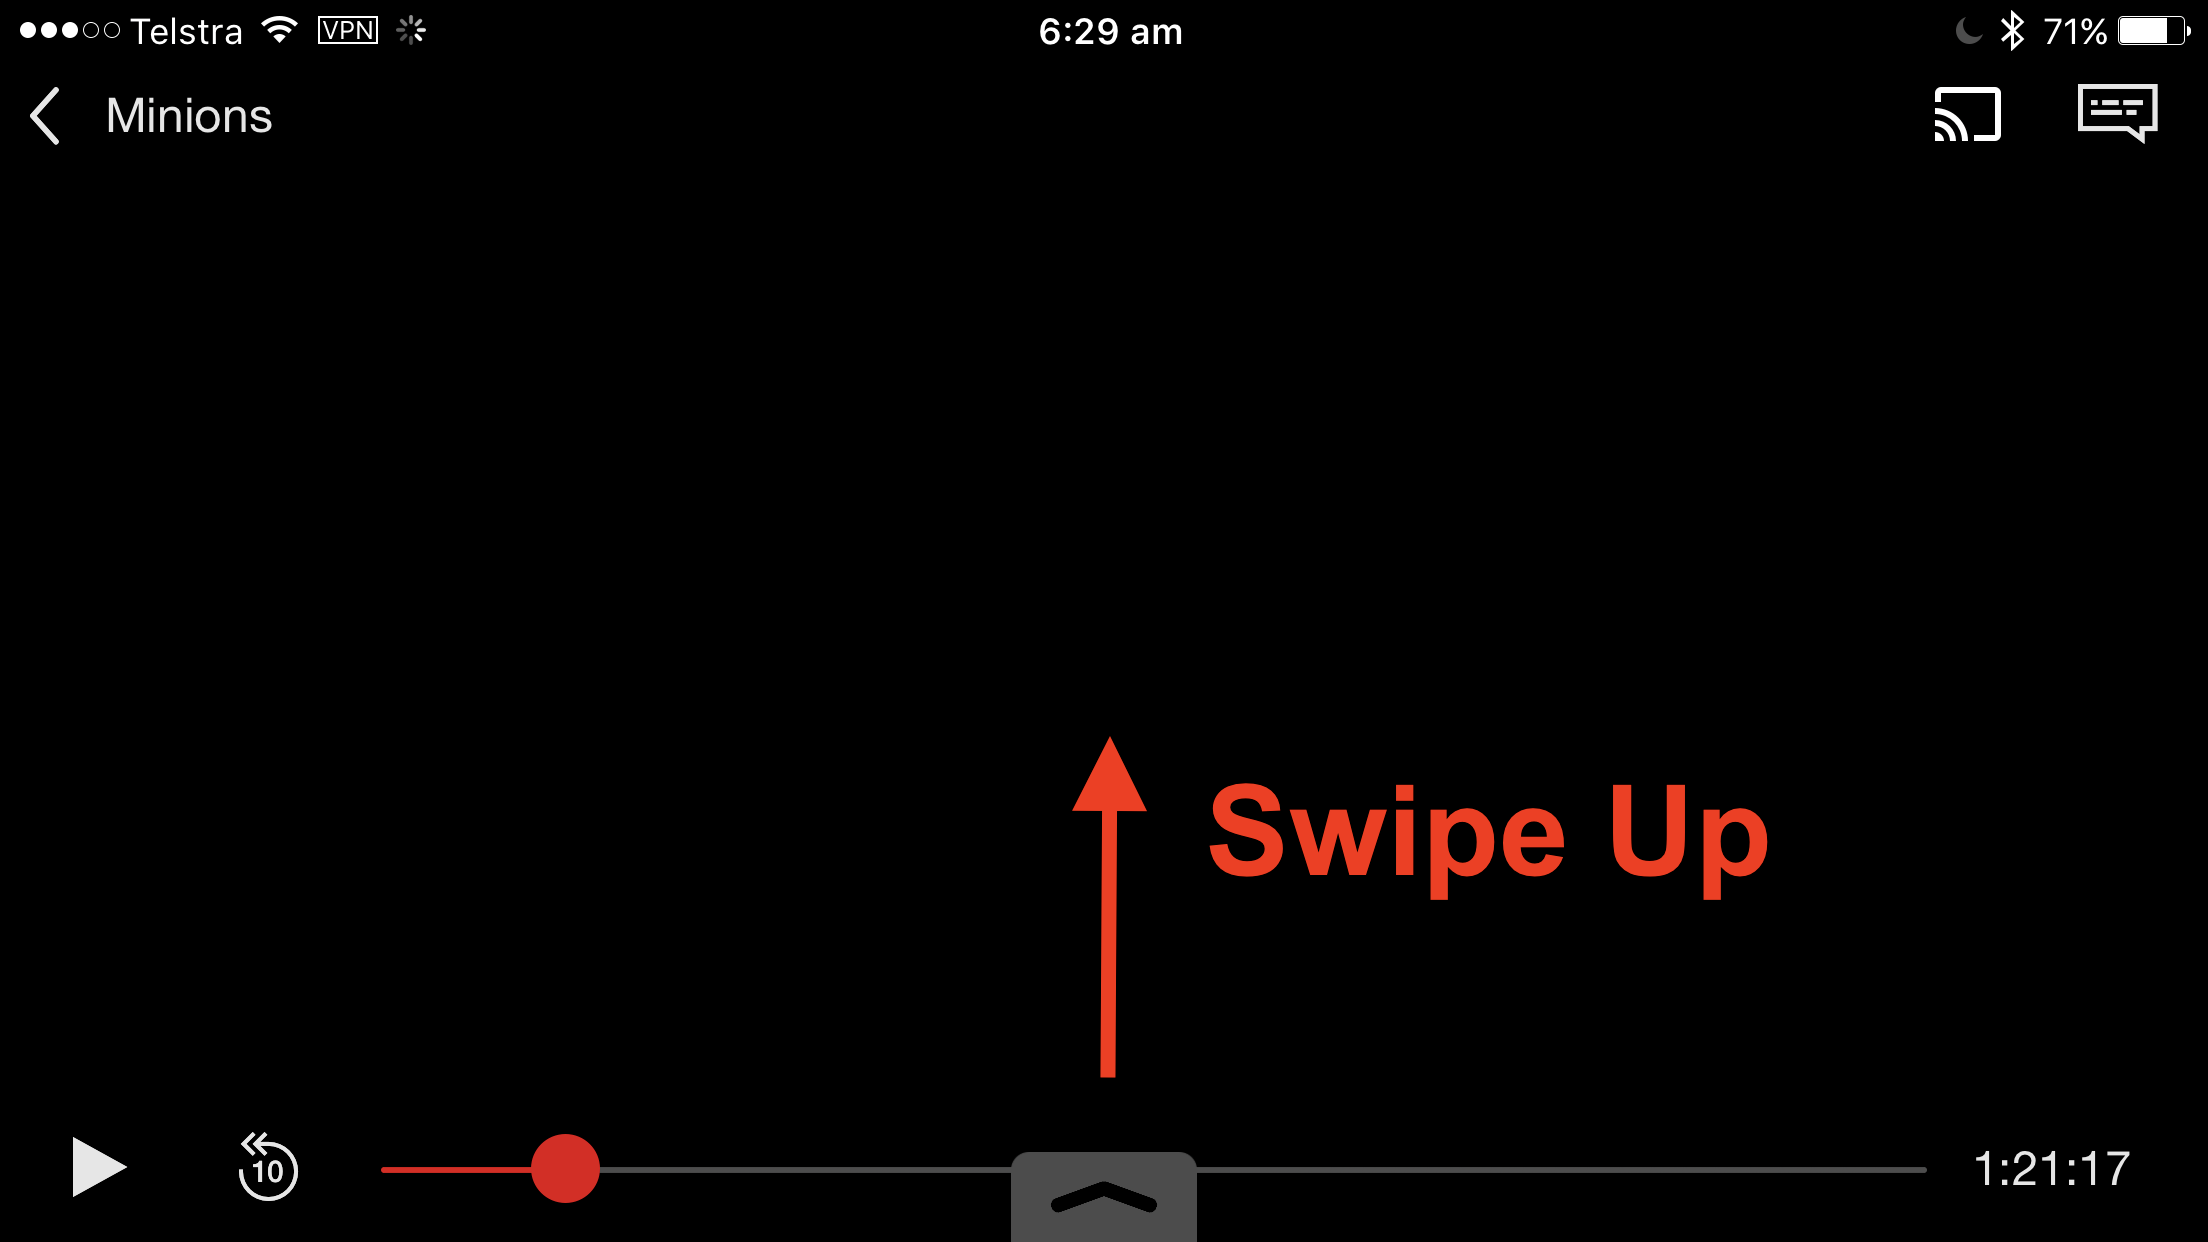 3) Swipe Up From The Bottom Of The Screen To Reveal The Airplay Menu